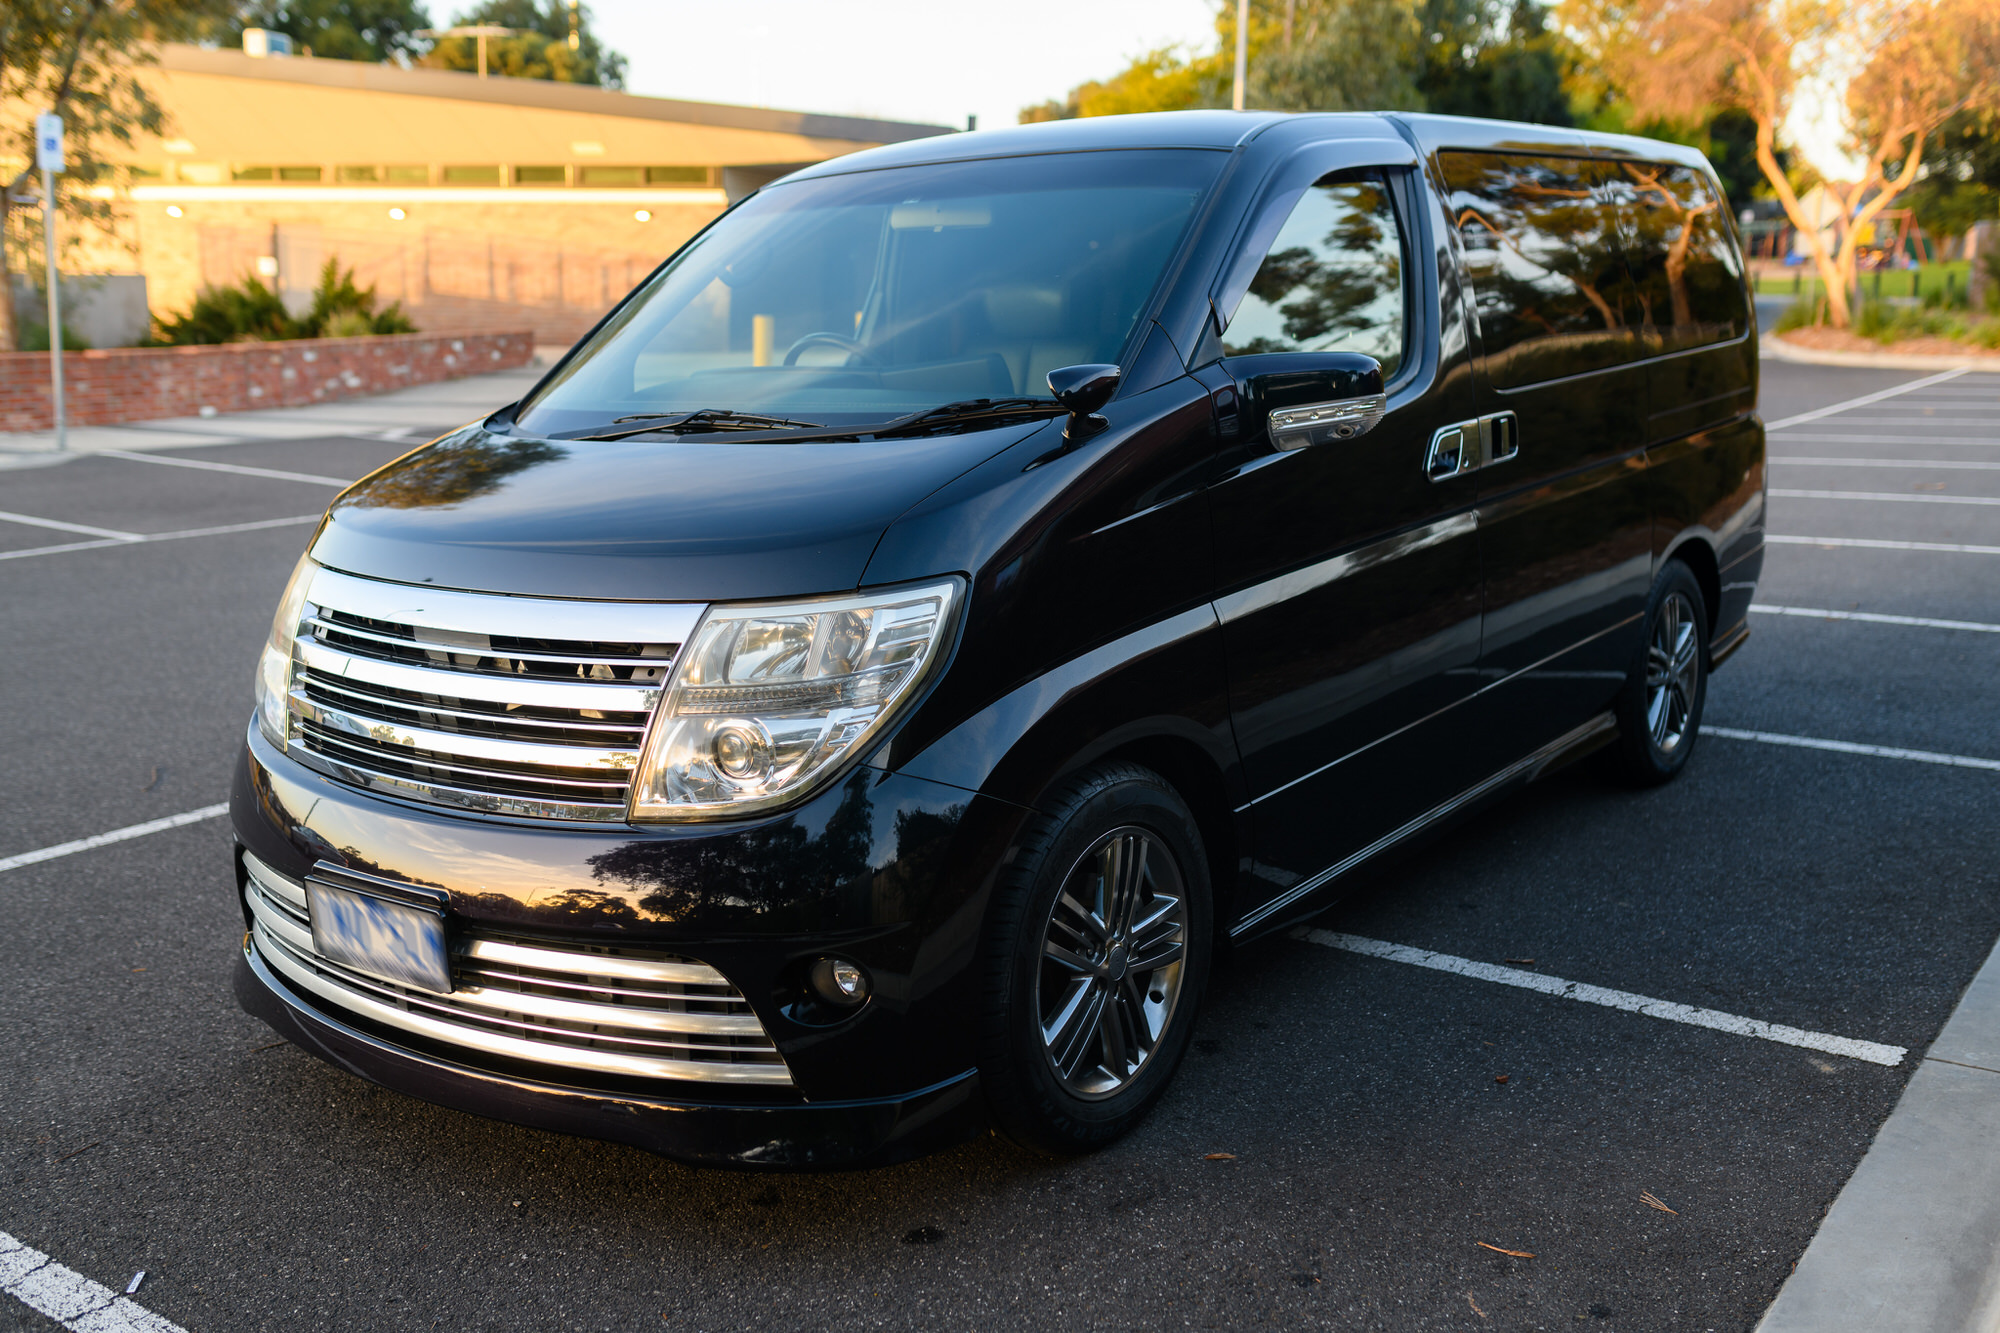 Picture of Zen's 2009 Nissan Elgrand